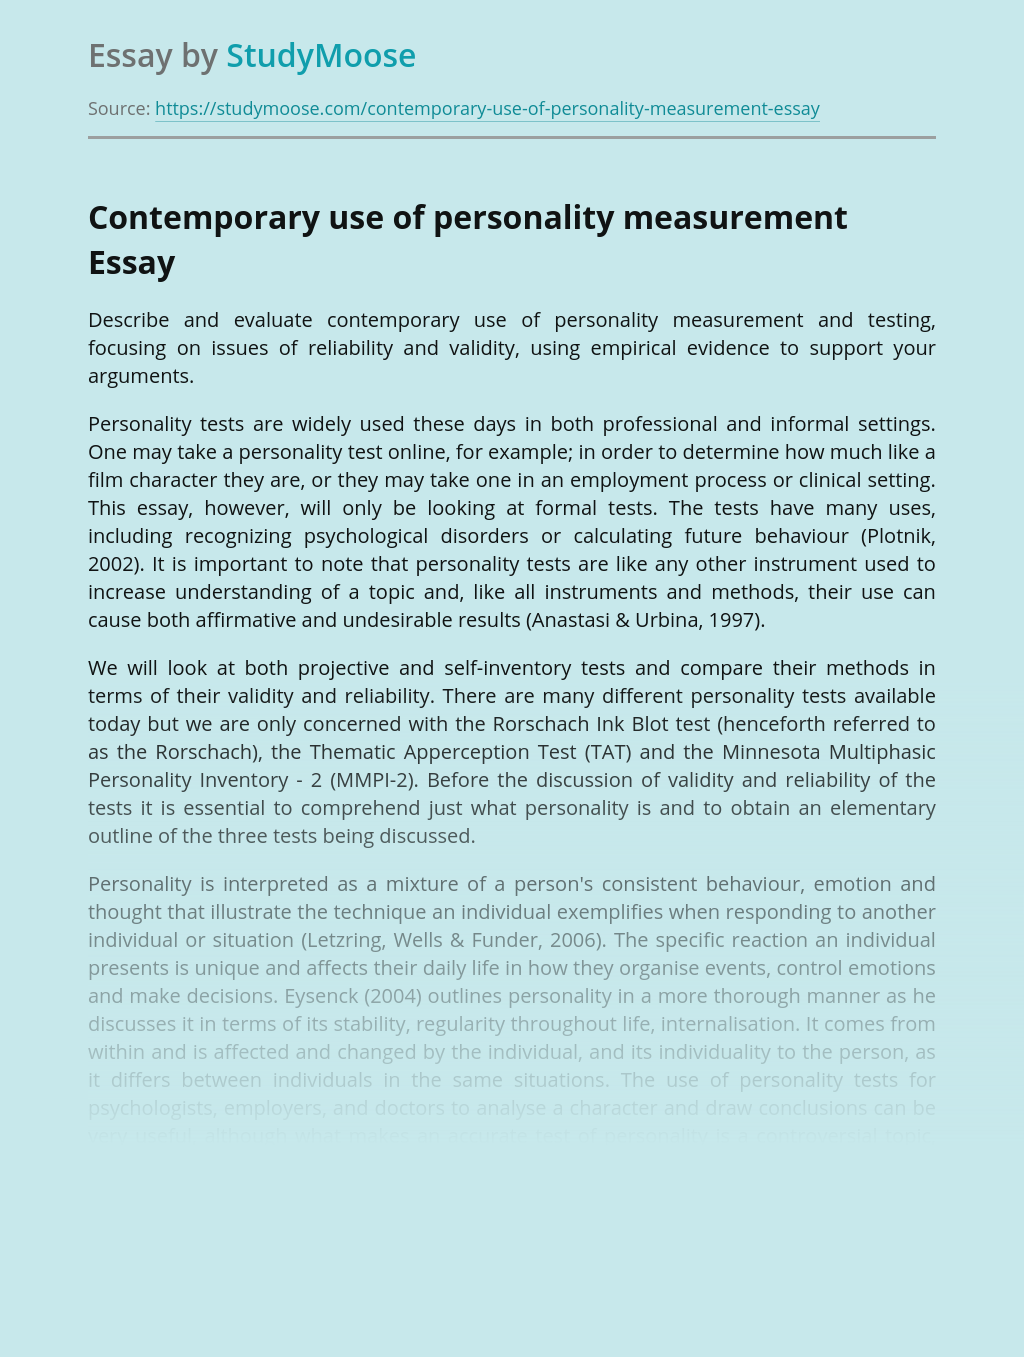 Contemporary use of personality measurement